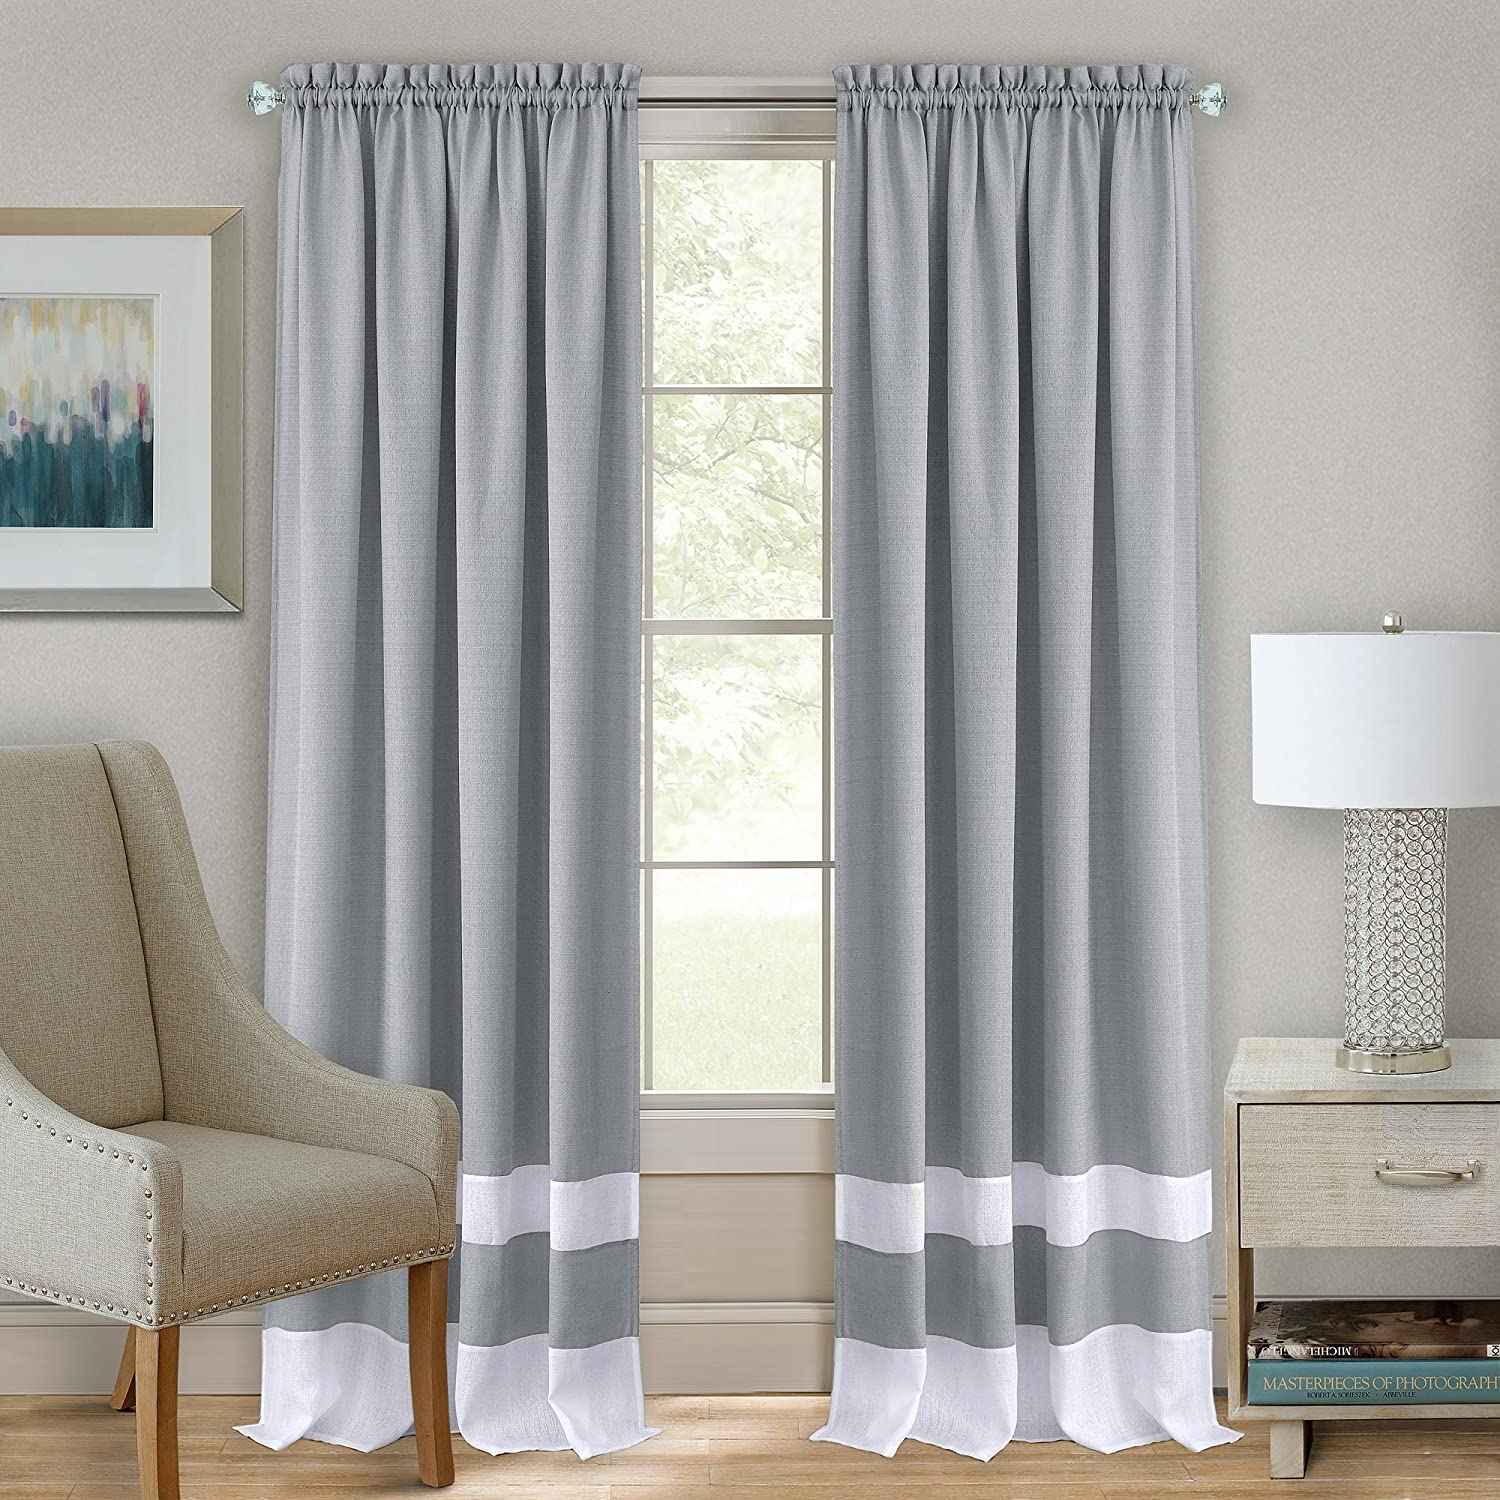 "Achim Home Furnishings Essense Grommet Window Curtain Panel, Blue, 52 x 63-Inch, Rod Pocket 52"" x 63"", Grey & White"